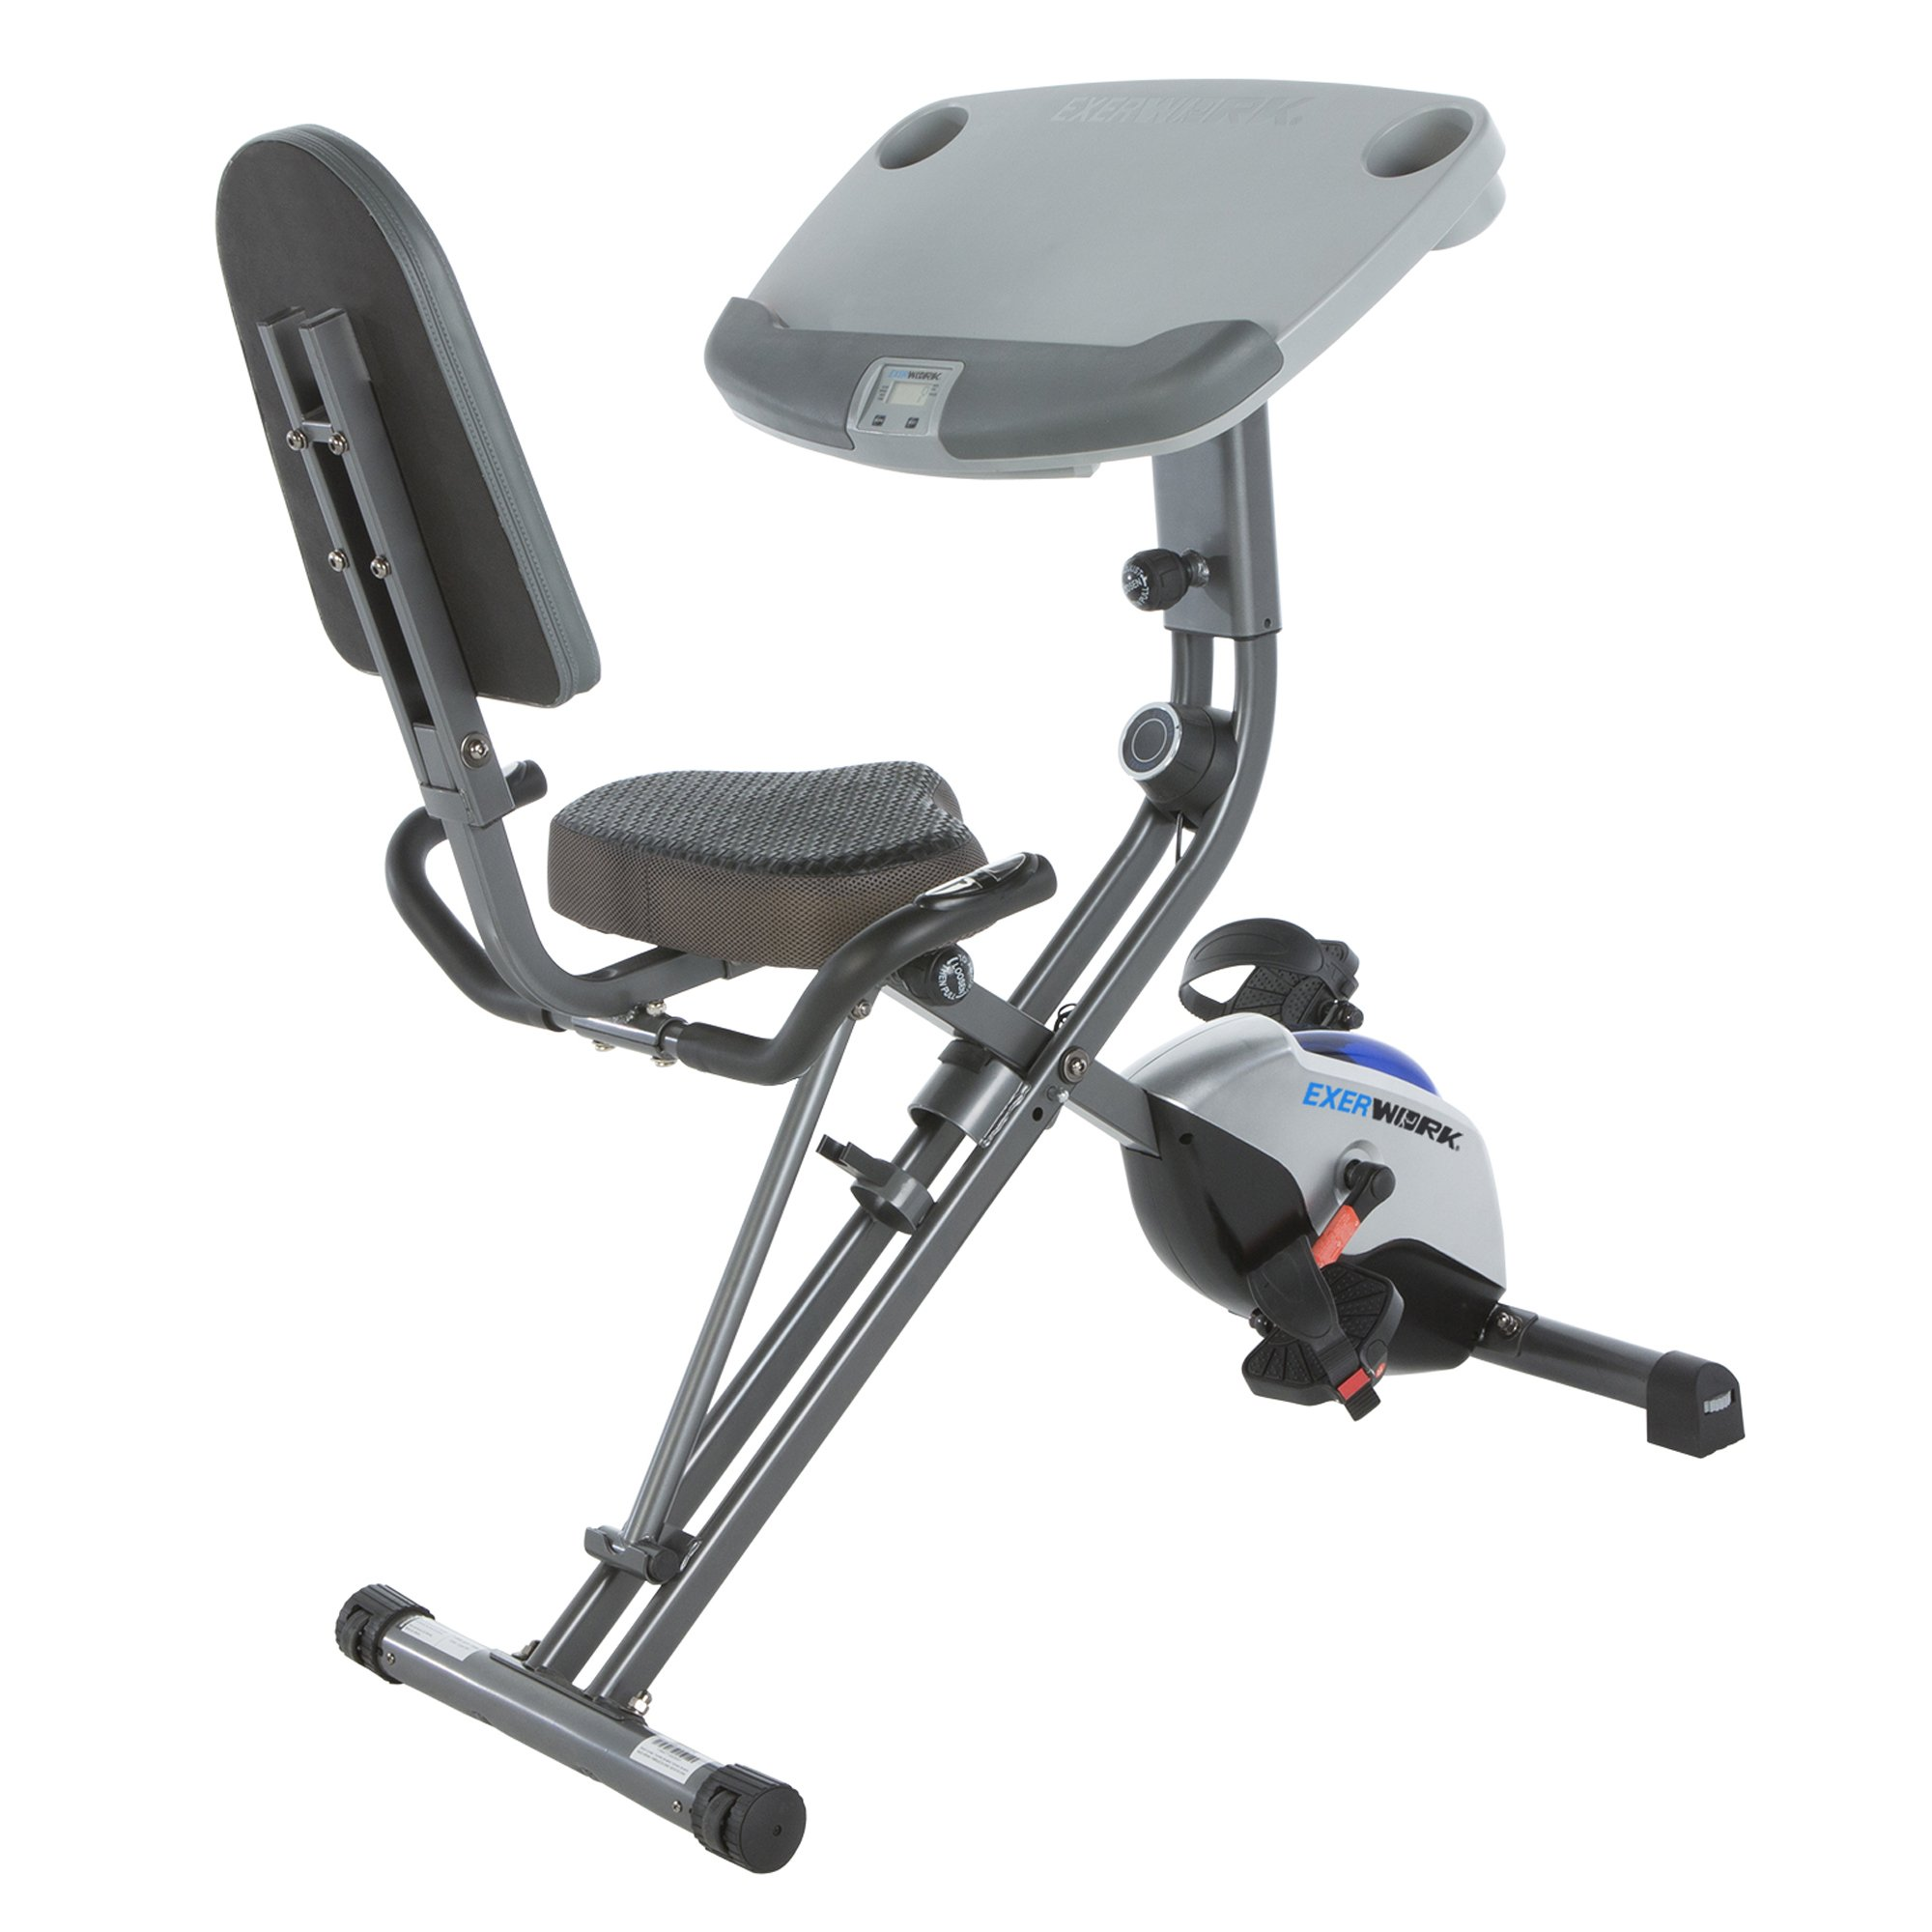 Exerpeutic ExerWorK 1000 Fully Adjustable Desk Folding Exercise Bike with Pulse by Exerpeutic (Image #2)